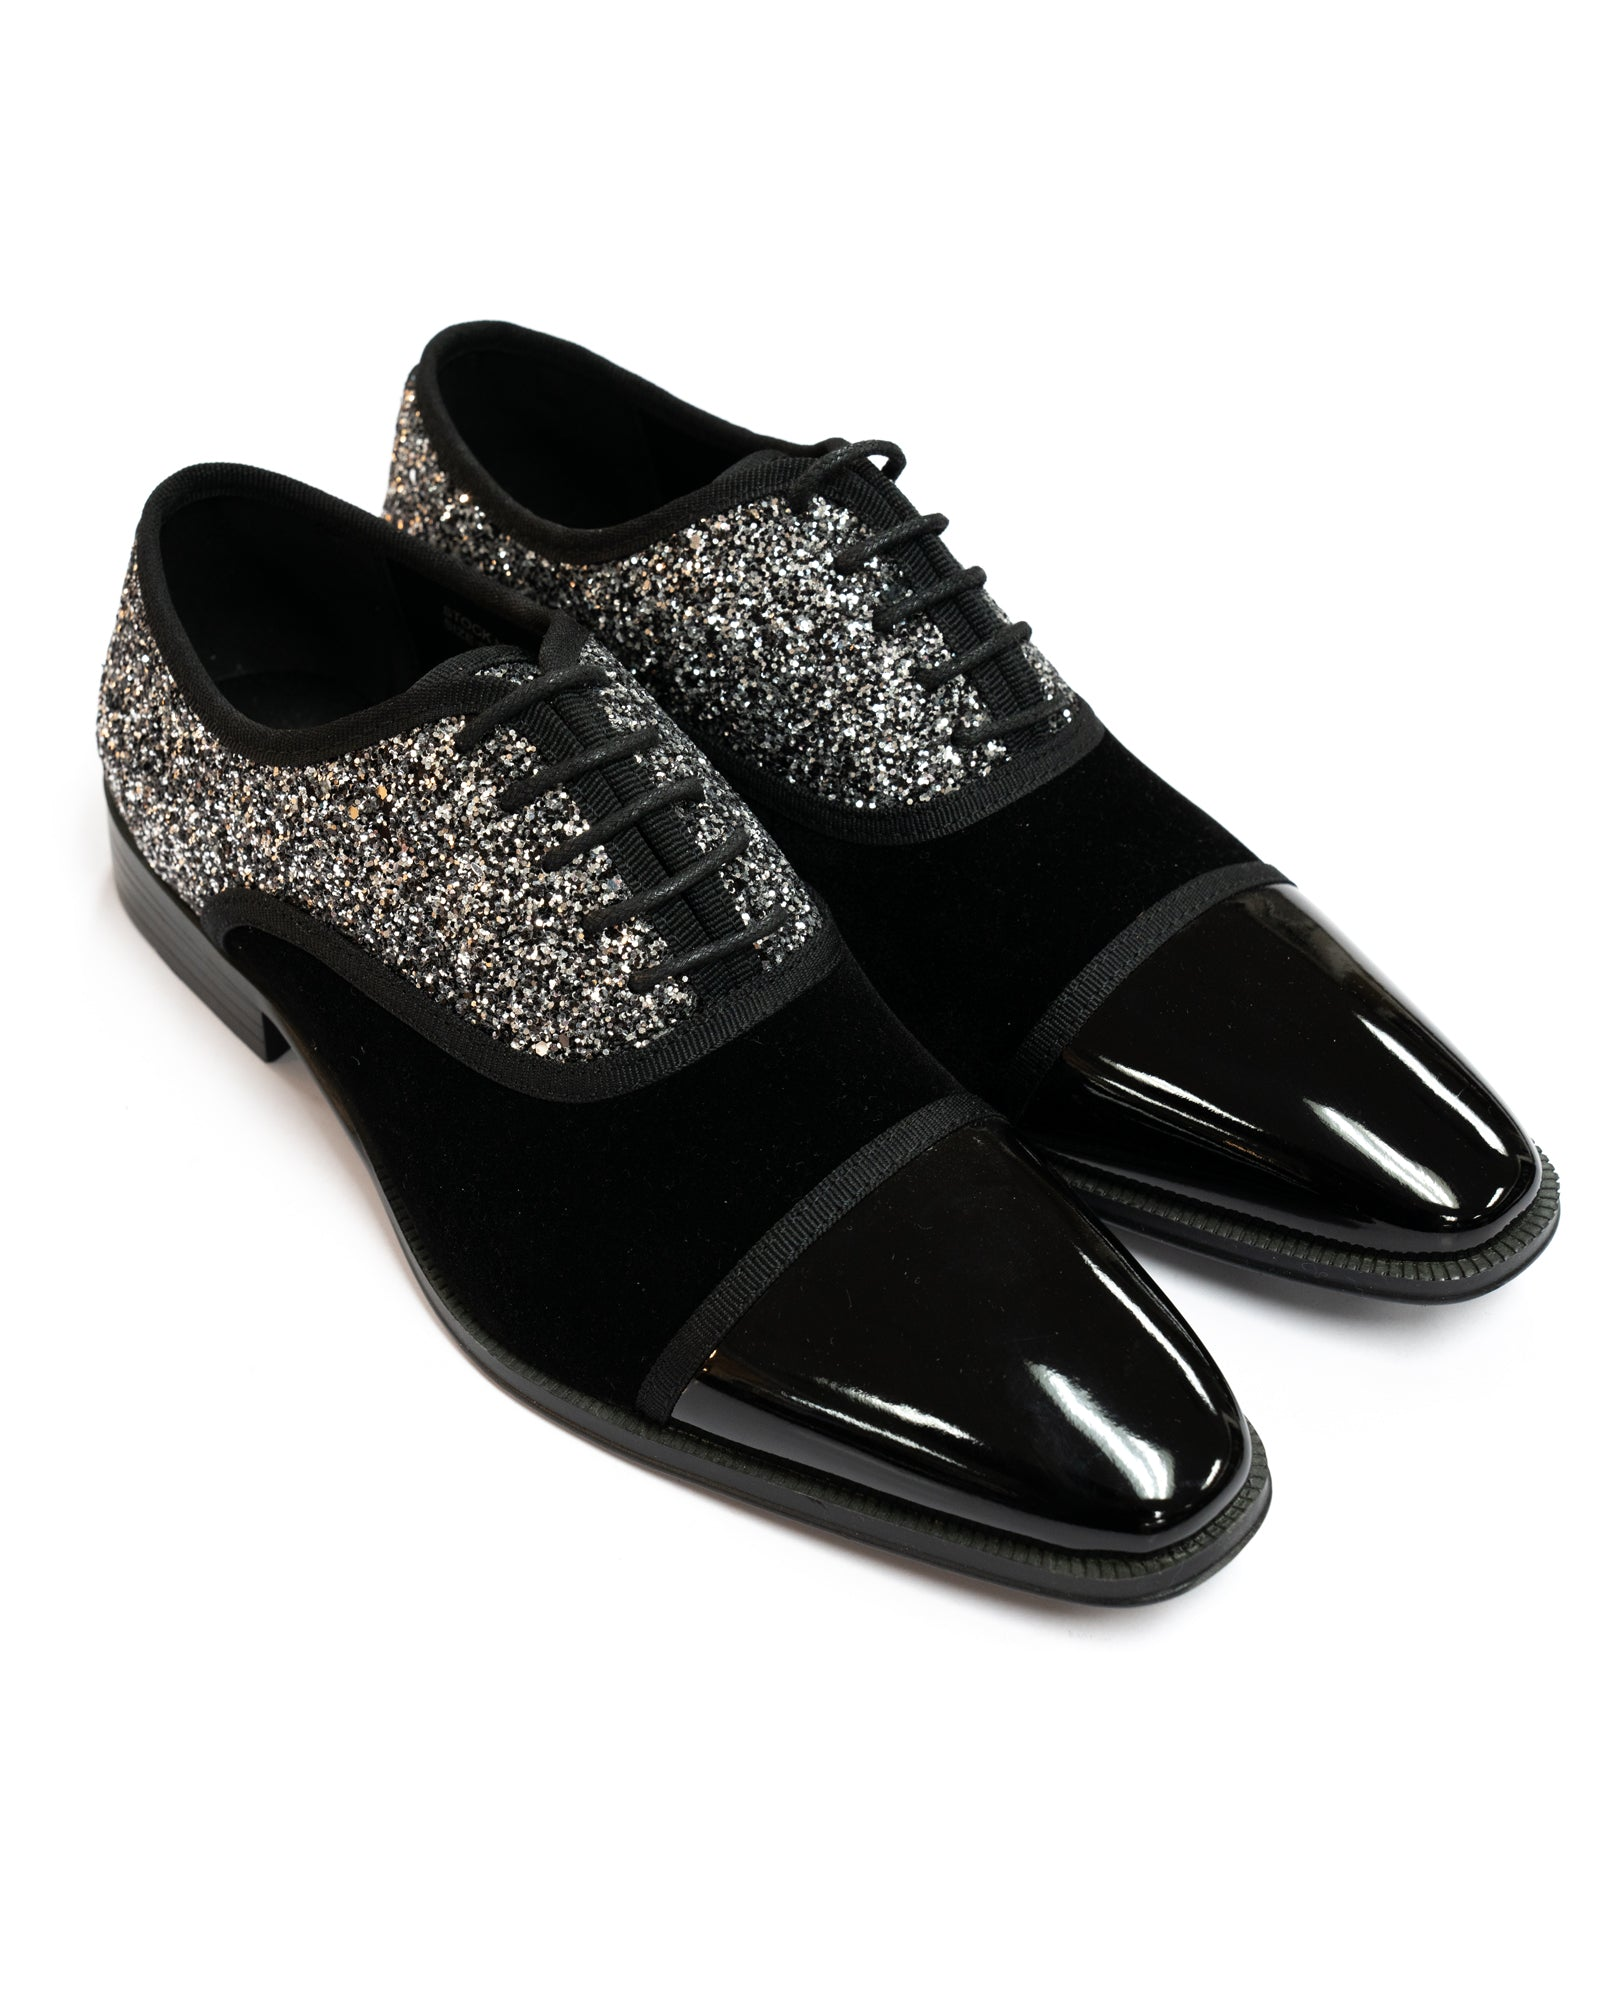 After Midnight Glitter Formal Lace Up Captoe Shoe in Black & Silver - Rainwater's Men's Clothing and Tuxedo Rental